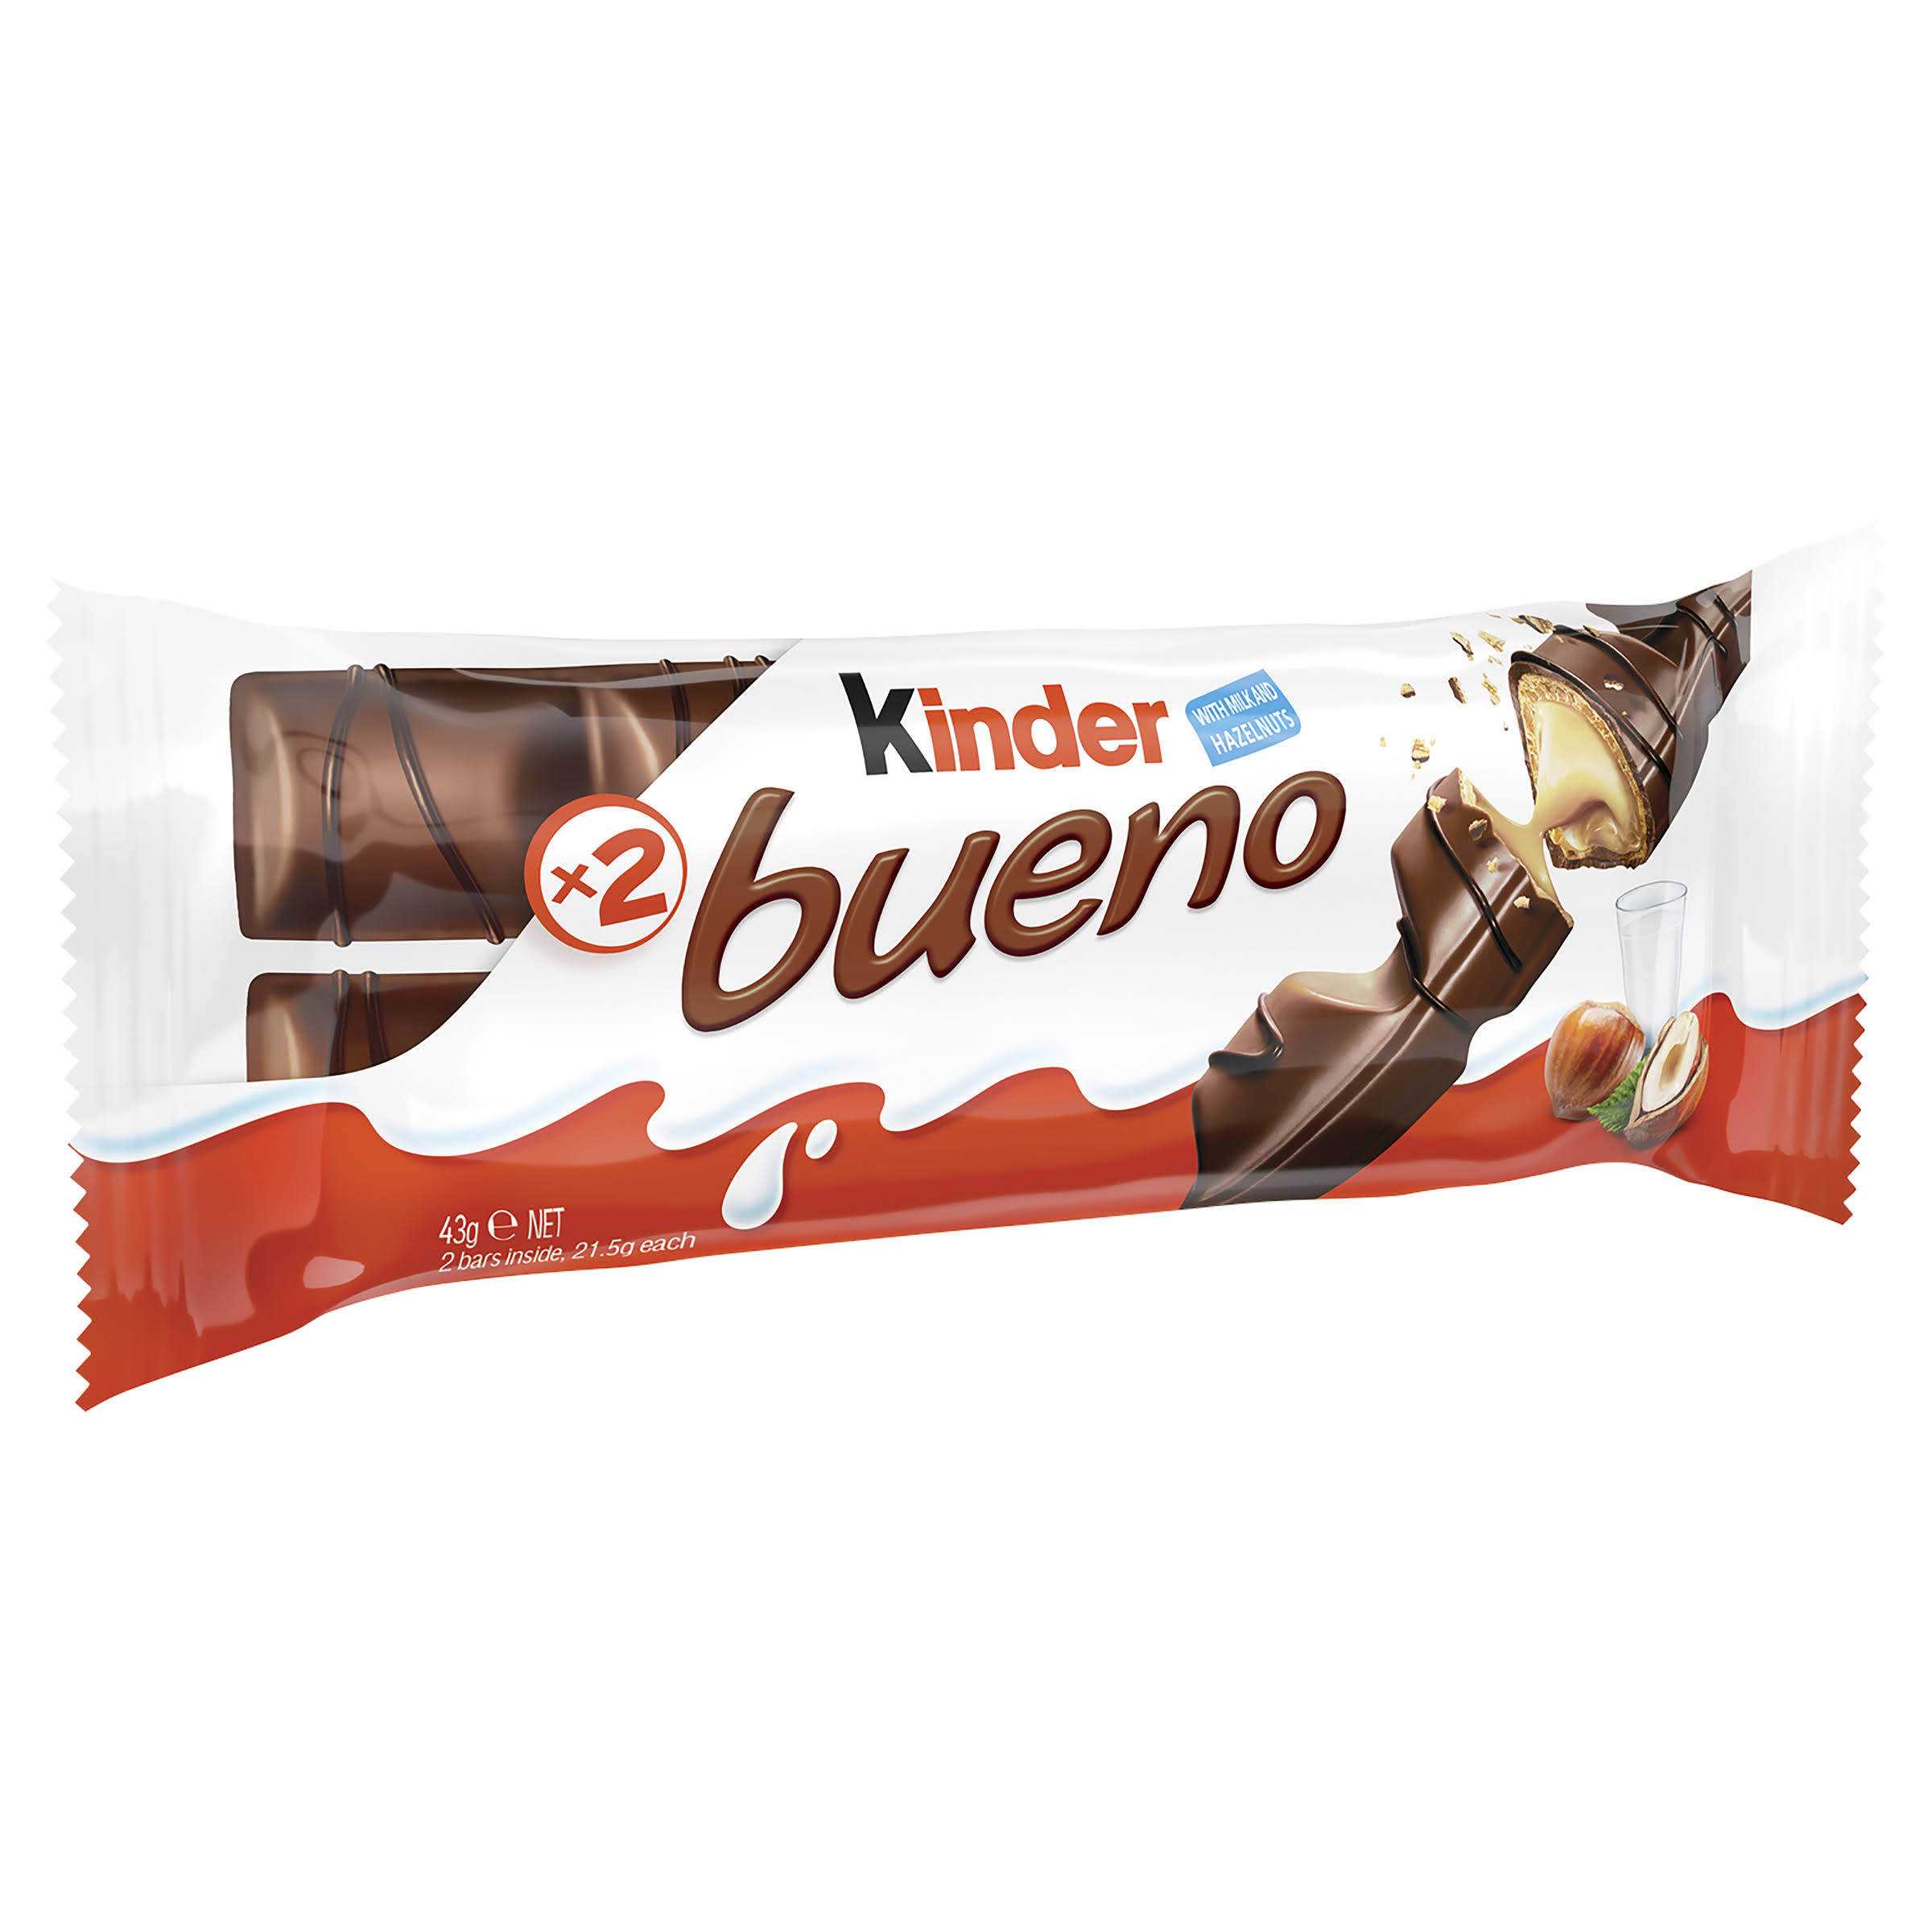 Kinder Bueno Milk Chocolate and Hazelnuts Single Chocolate Bar - 2 Finger x 21.5g, 43g